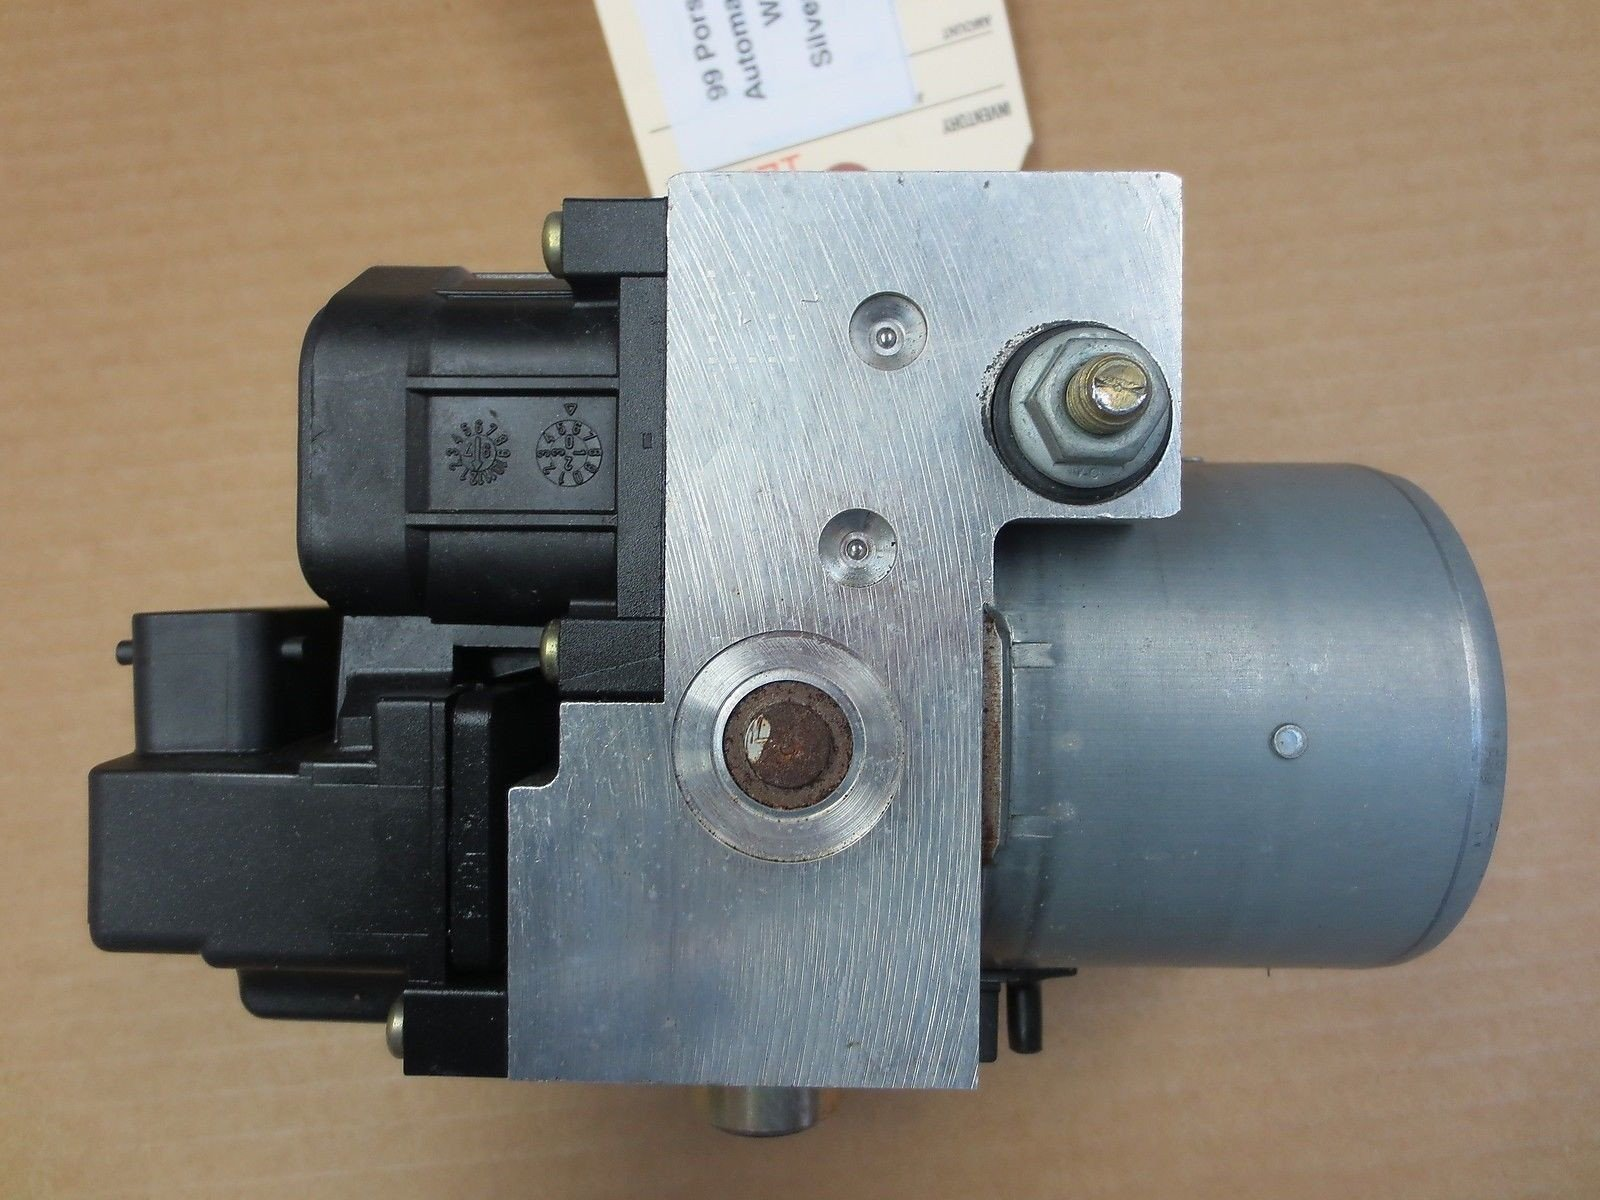 99 RWD Porsche 911 Carrera Coupe 996 ABS BRAKE PUMP 996.355.755.03 BOSCH 135k